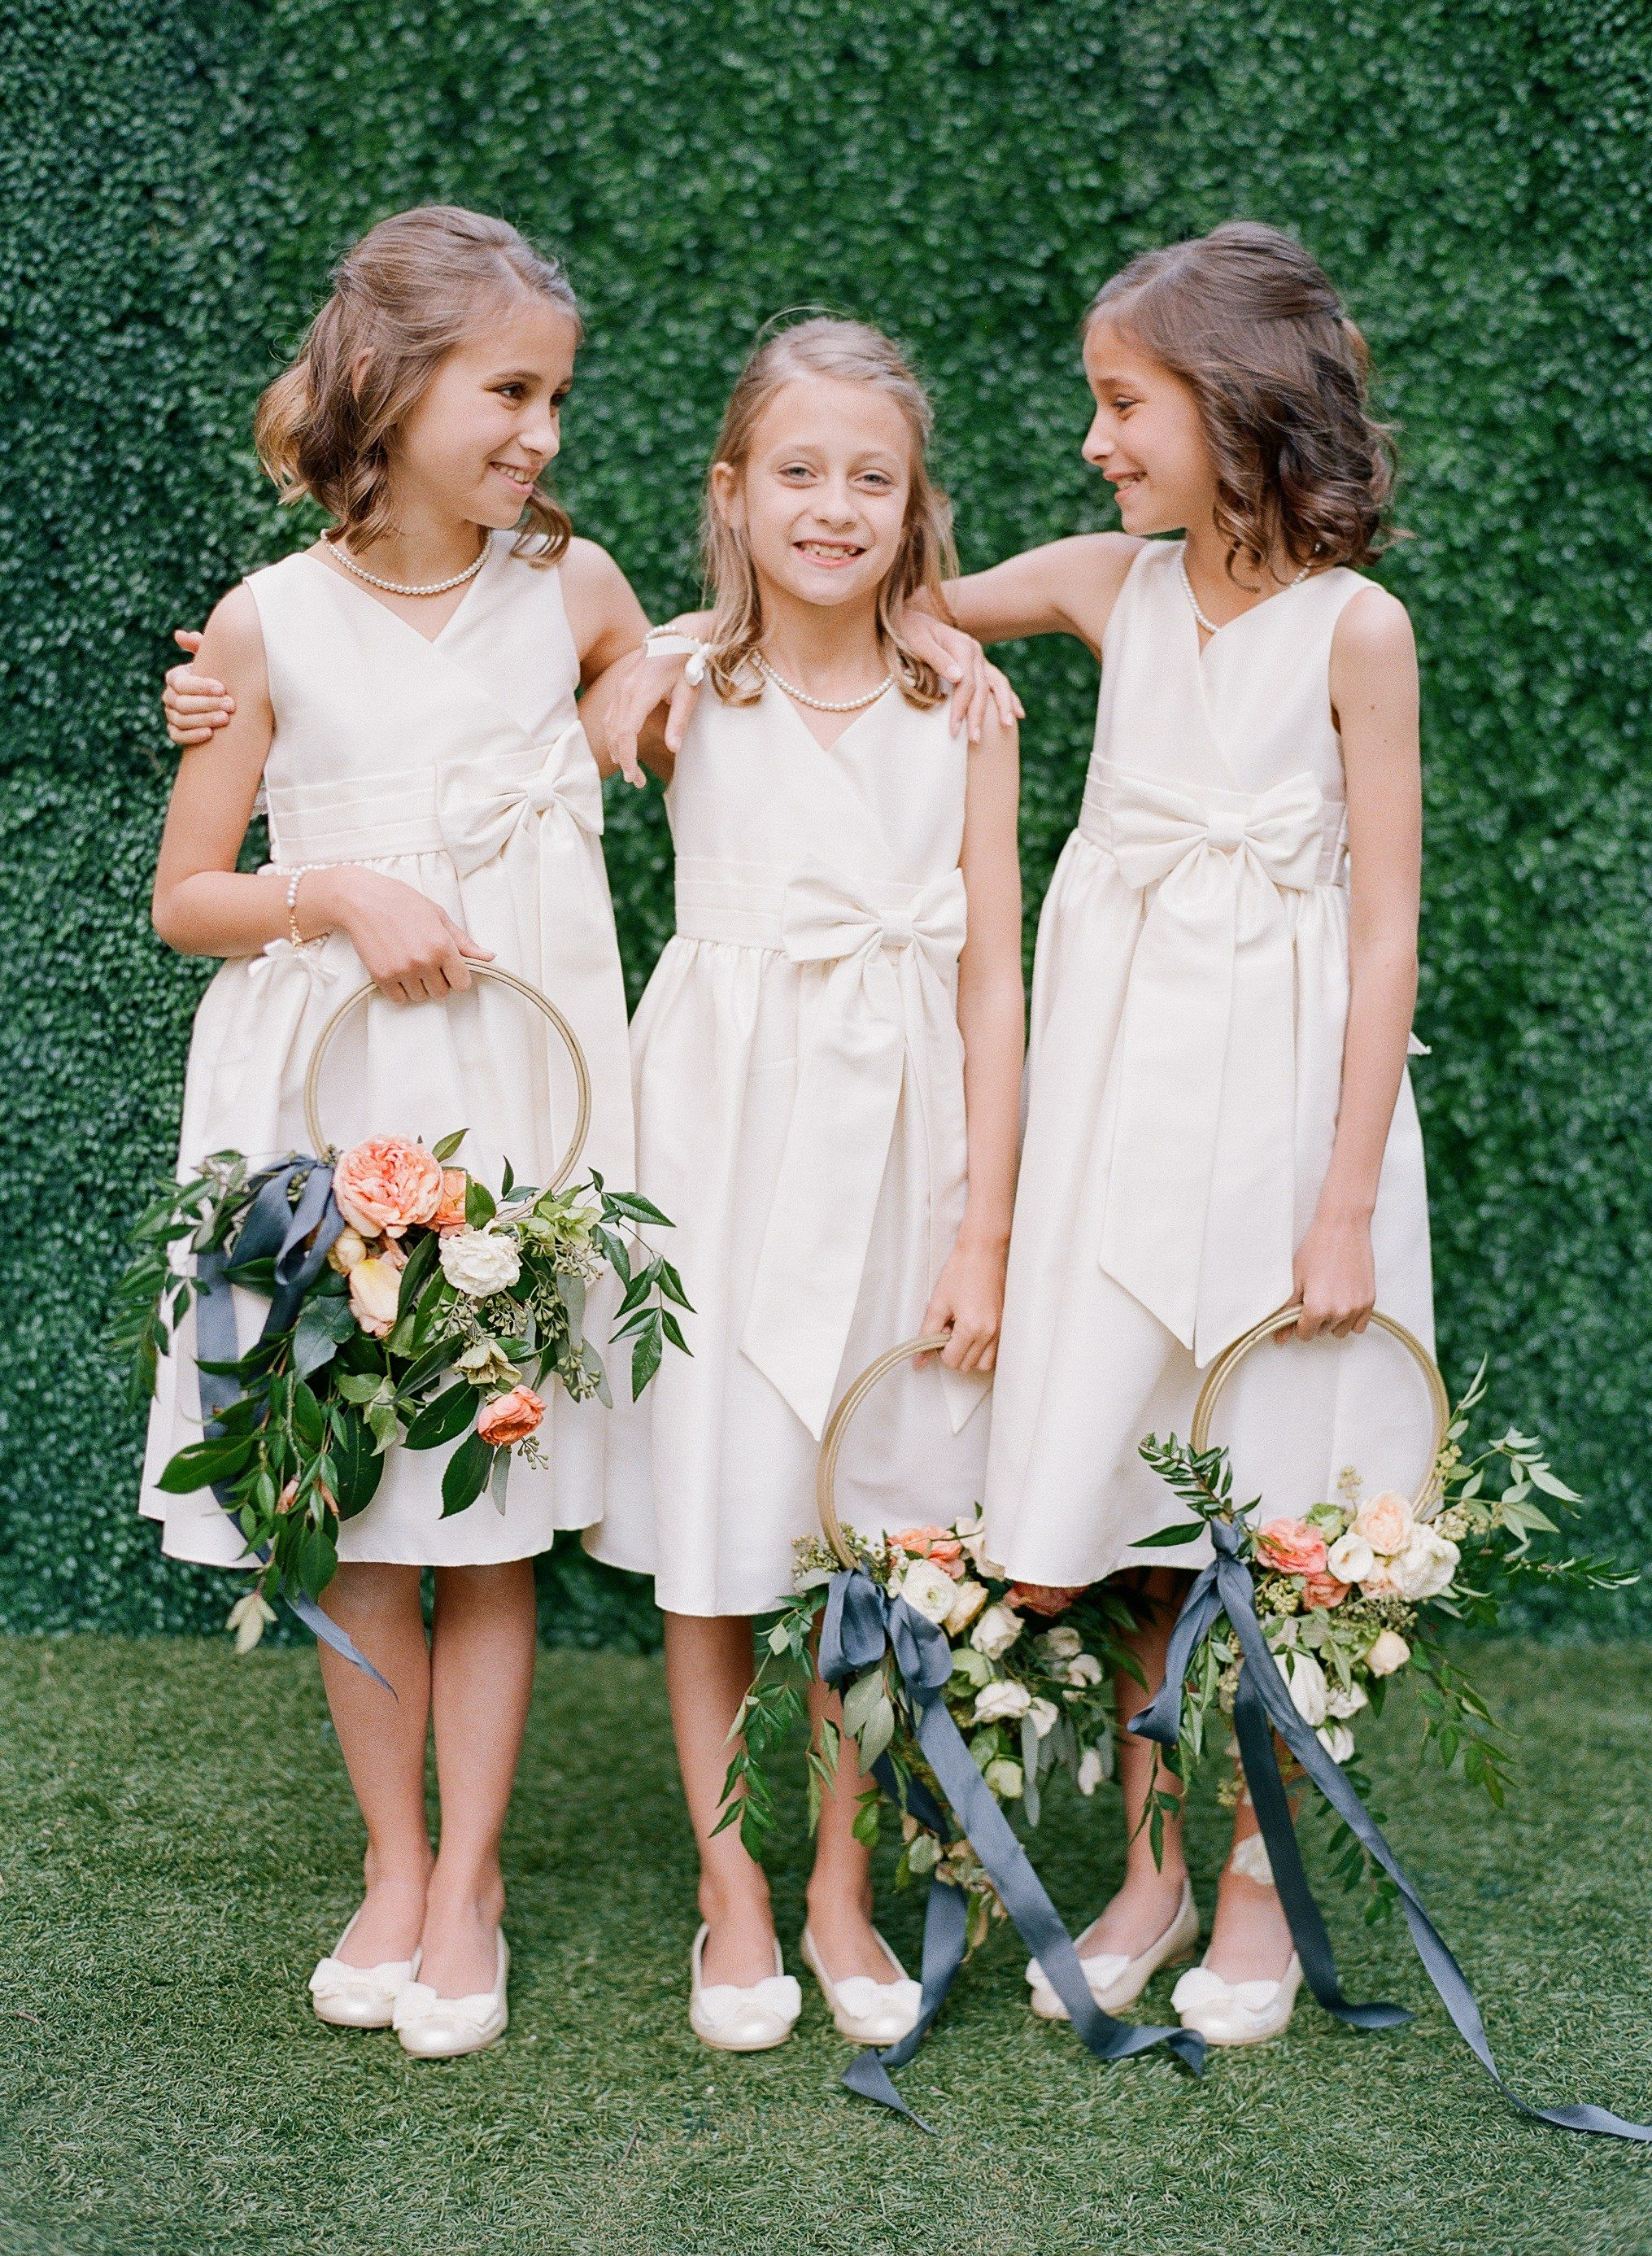 6 Non-Traditional Bouquet Ideas For Your Bridal Party | Brides ...